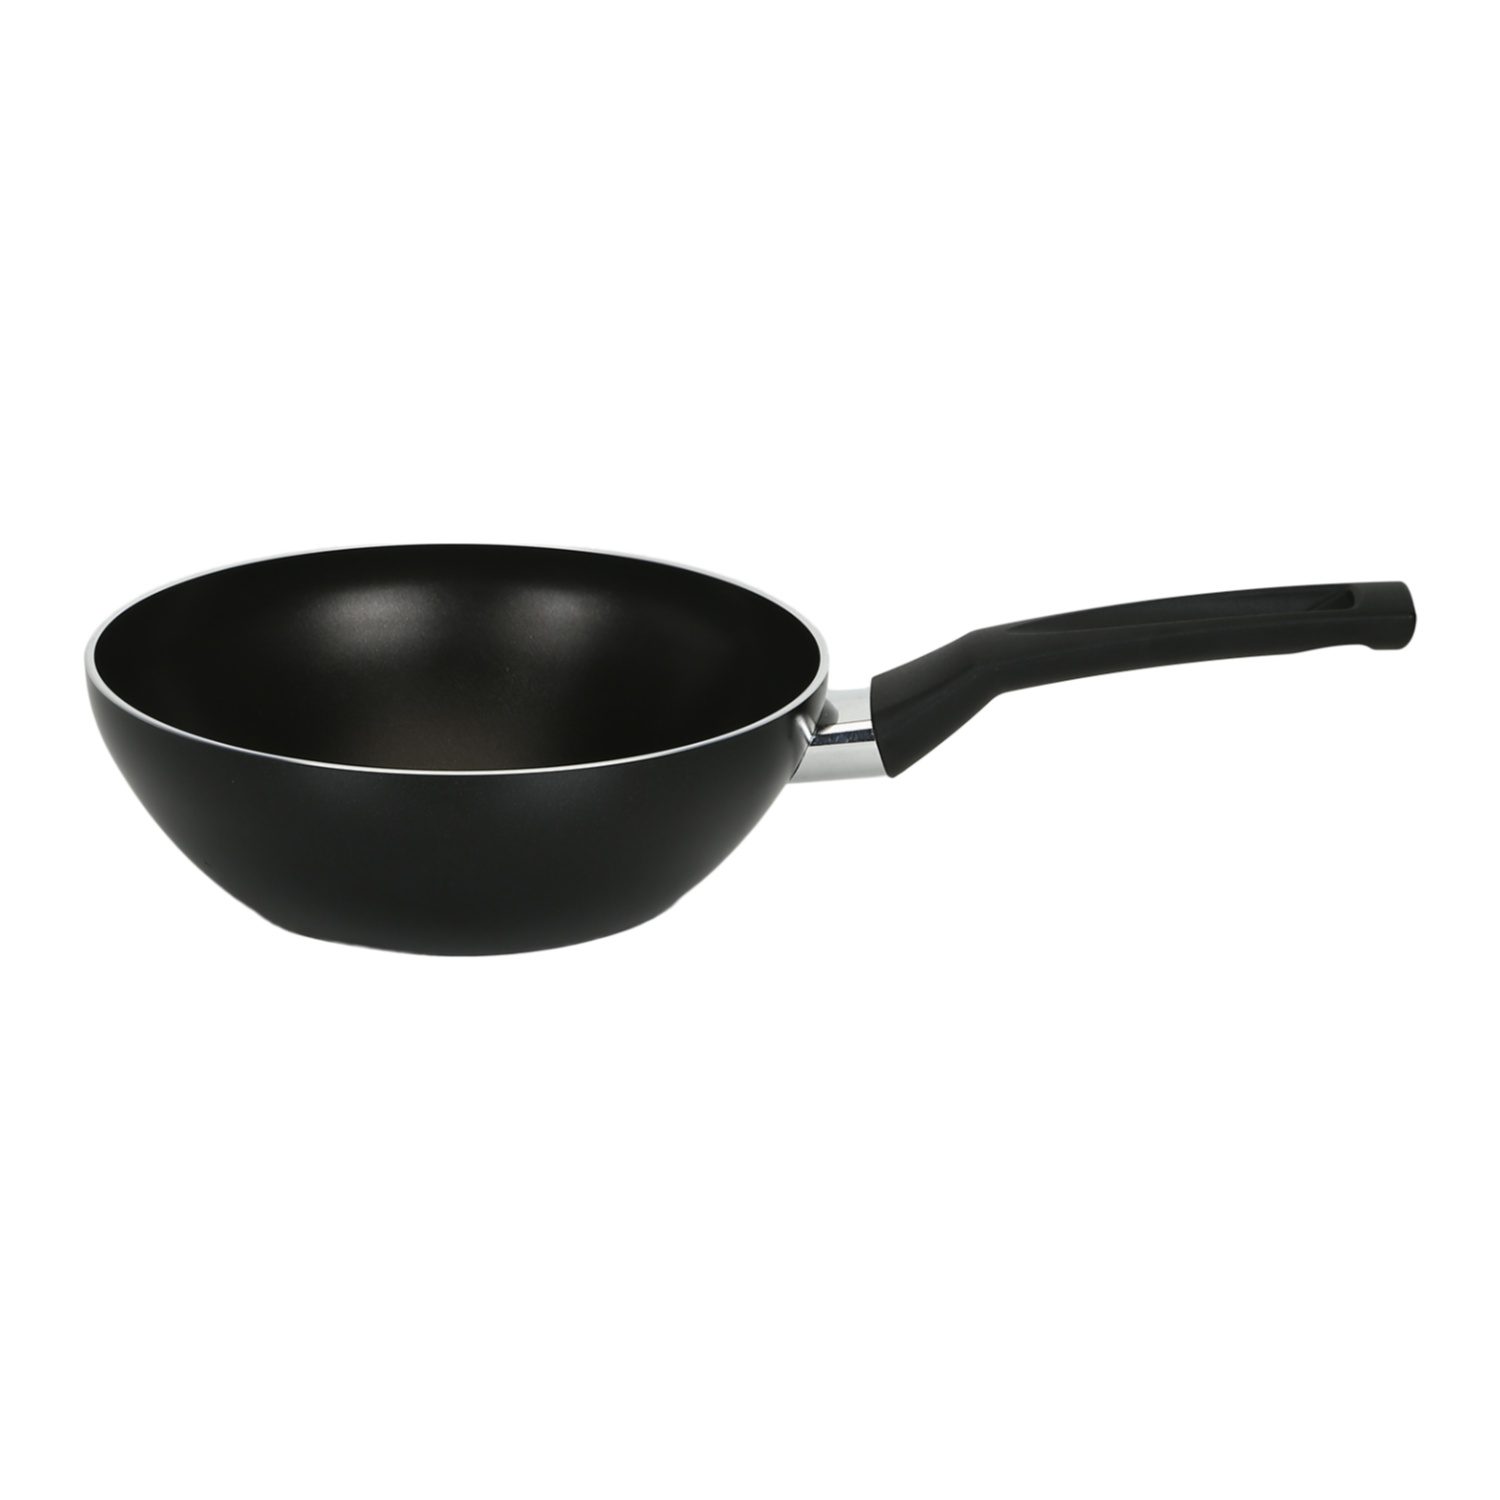 Meyer Safecook 26cm Stirfry (Non stick , Not Induction Suitable) Hard Anodized Aluminium Fry Pans in Black Colour by meyer